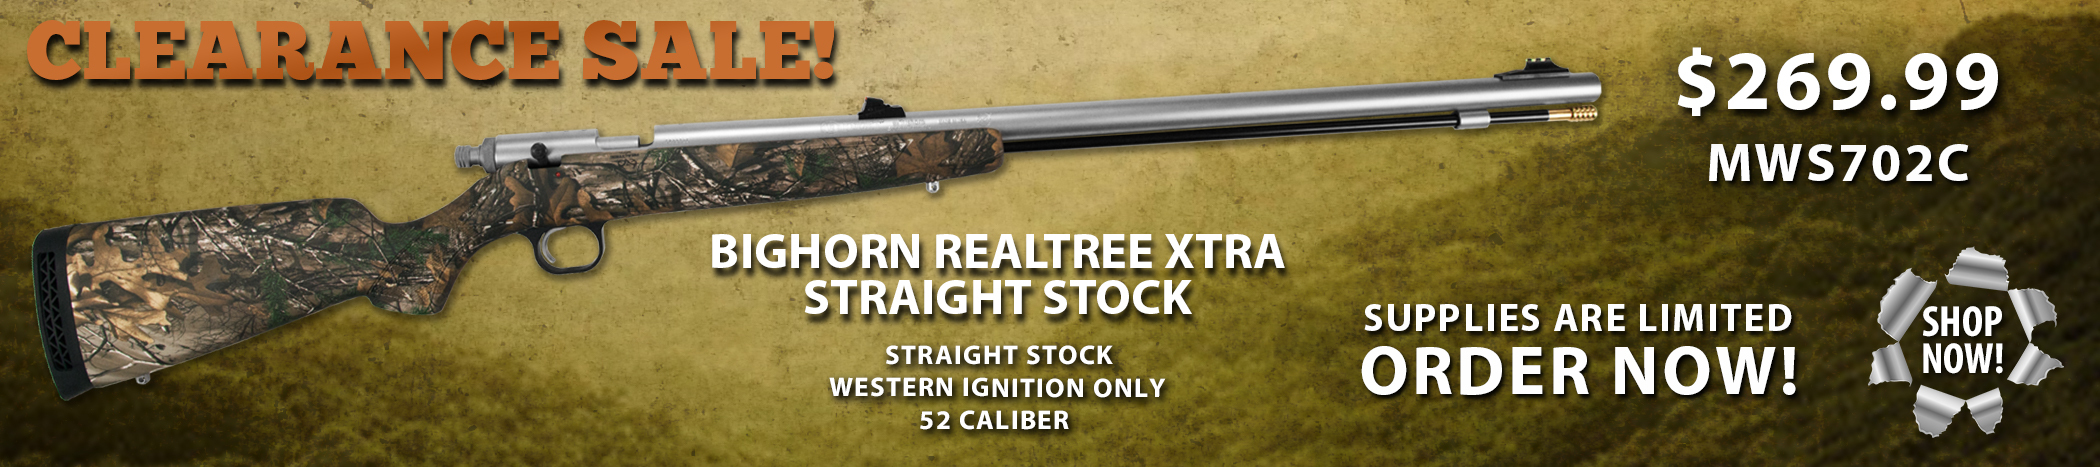 Knight-Bighorn-RealTree-Xtra-Camo-Sale-Banner